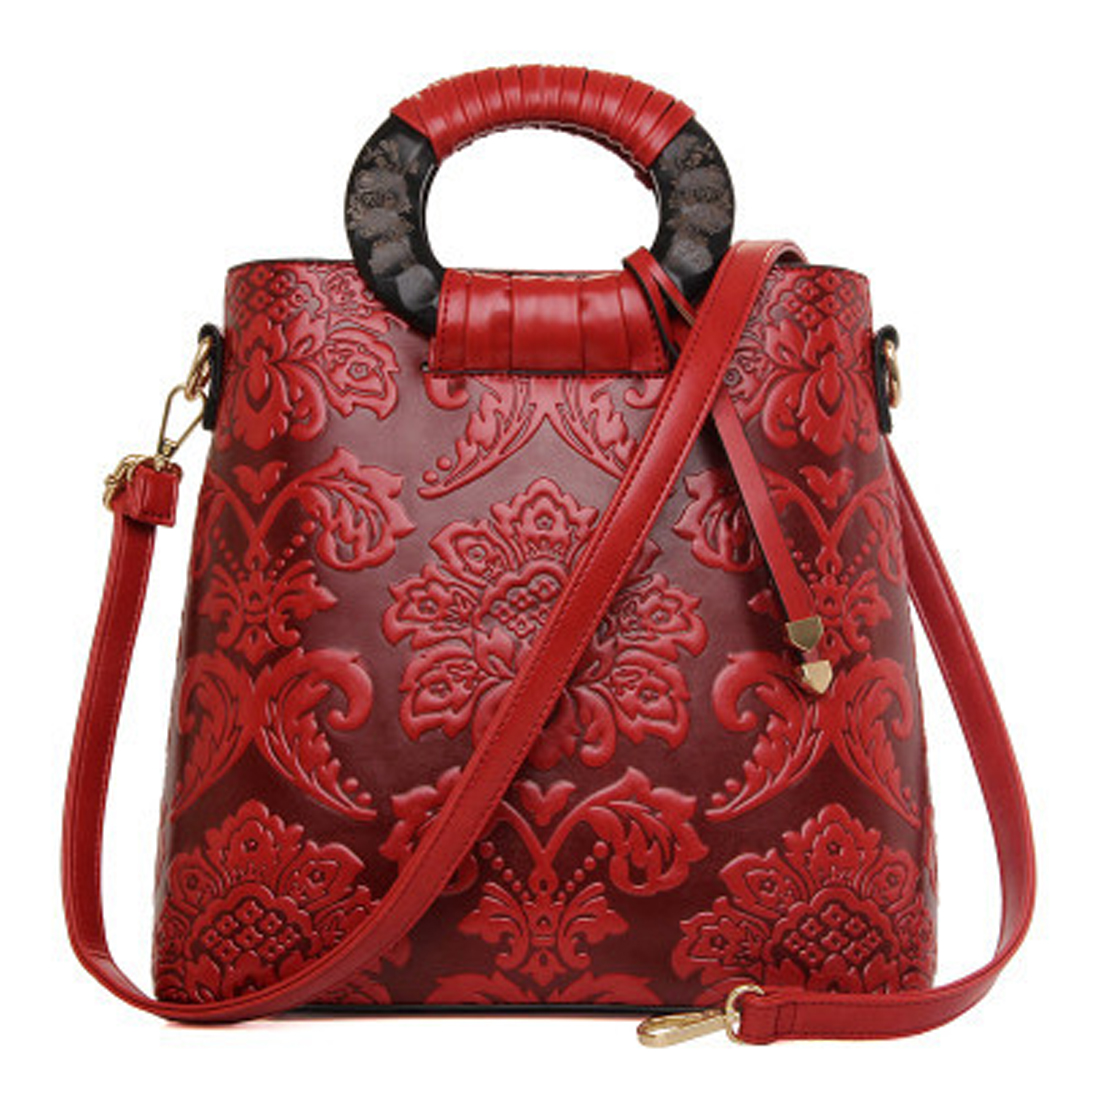 Ethnic Style Woman Bags 2018 Tote Bag Handbag Fashion Handbags Vintage Leather Ladies Crossbody Single Shoulder Bag 2018 new style genuine leather woman handbag vintage metal ring cloe shoulder bag ladies casual tote fashion chain crossbody bag